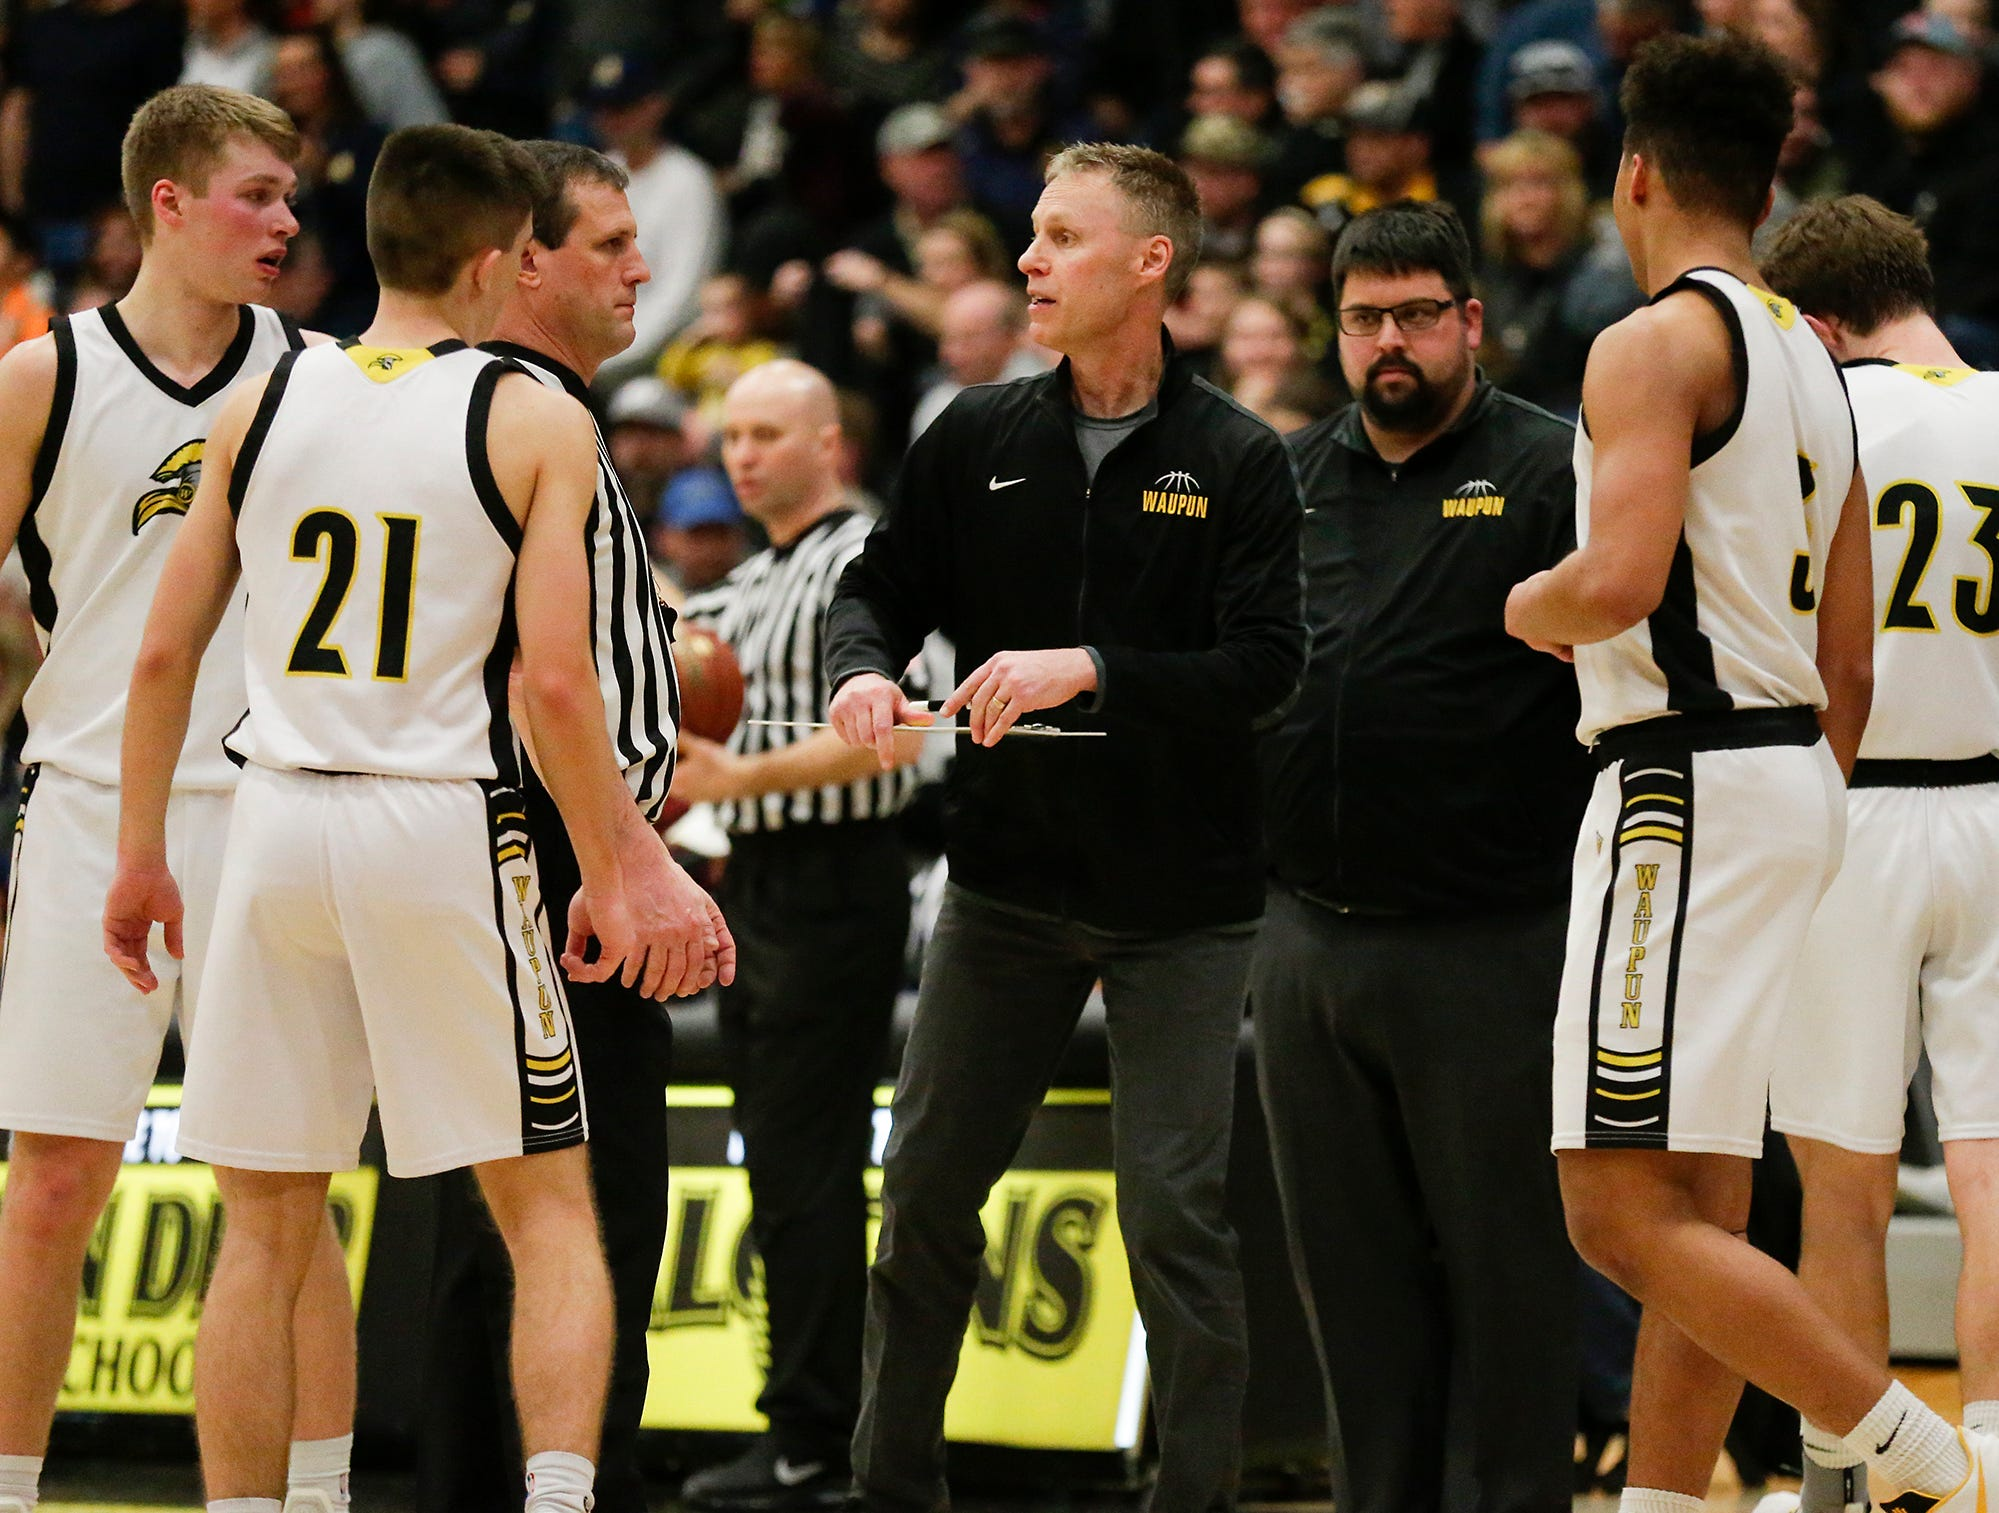 Waupun High School boys basketball coach Dan Domask talks with his team during a time out during their WIAA division 3 sectional final game against Brookfield Academy Saturday, March 9, 2019 in Brown Deer, Wis. Waupun won the game 64-58 and will advance to the state tournament. Doug Raflik/USA TODAY NETWORK-Wisconsin